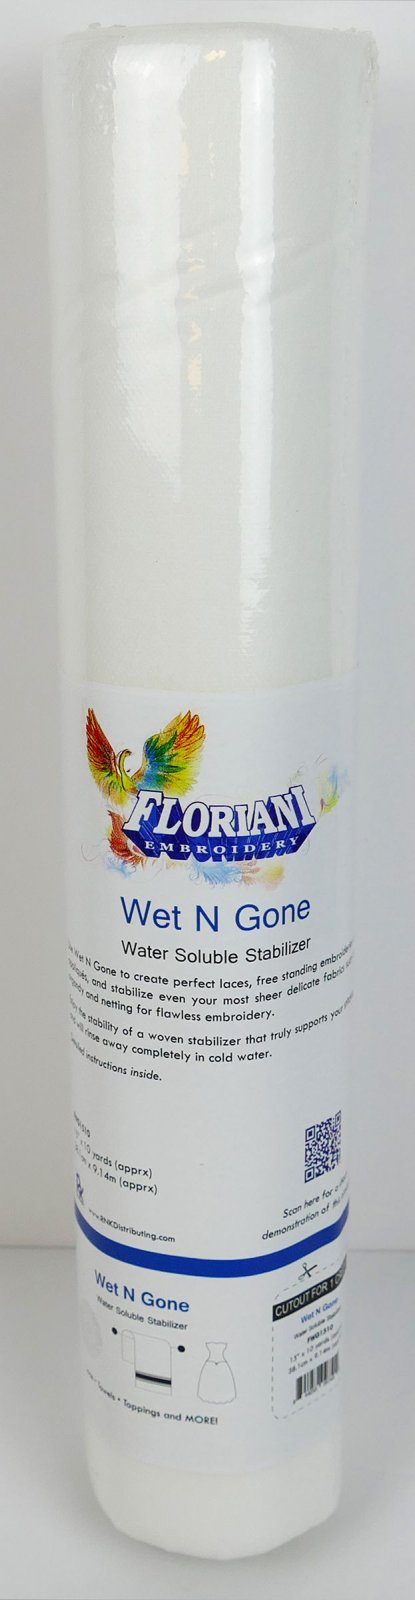 Wet N Gone - Water Soluble Stabilizer - 15 x 10 yards - Floriani